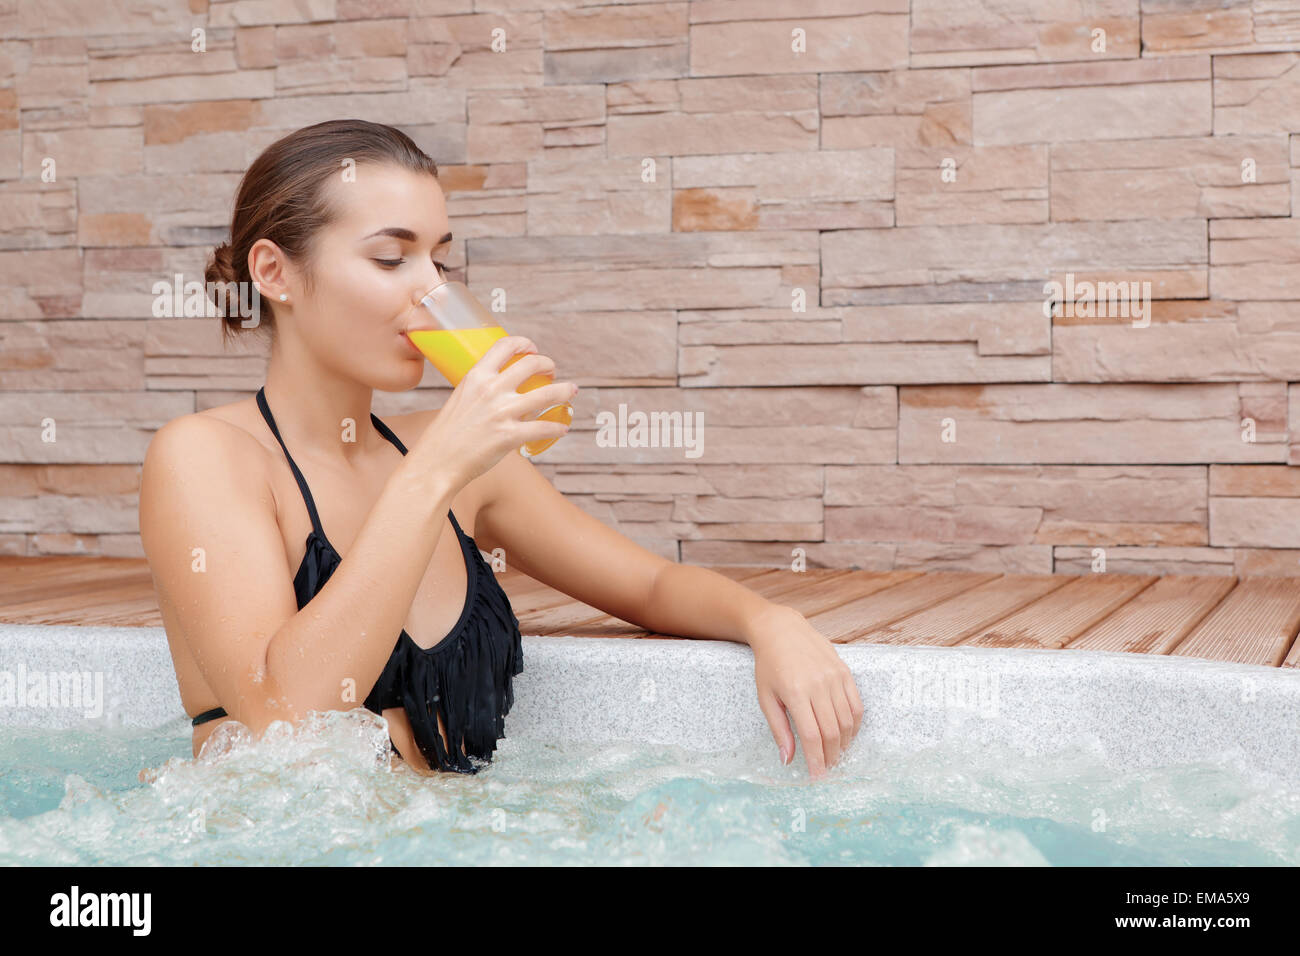 Woman spends time in a Jacuzzi - Stock Image